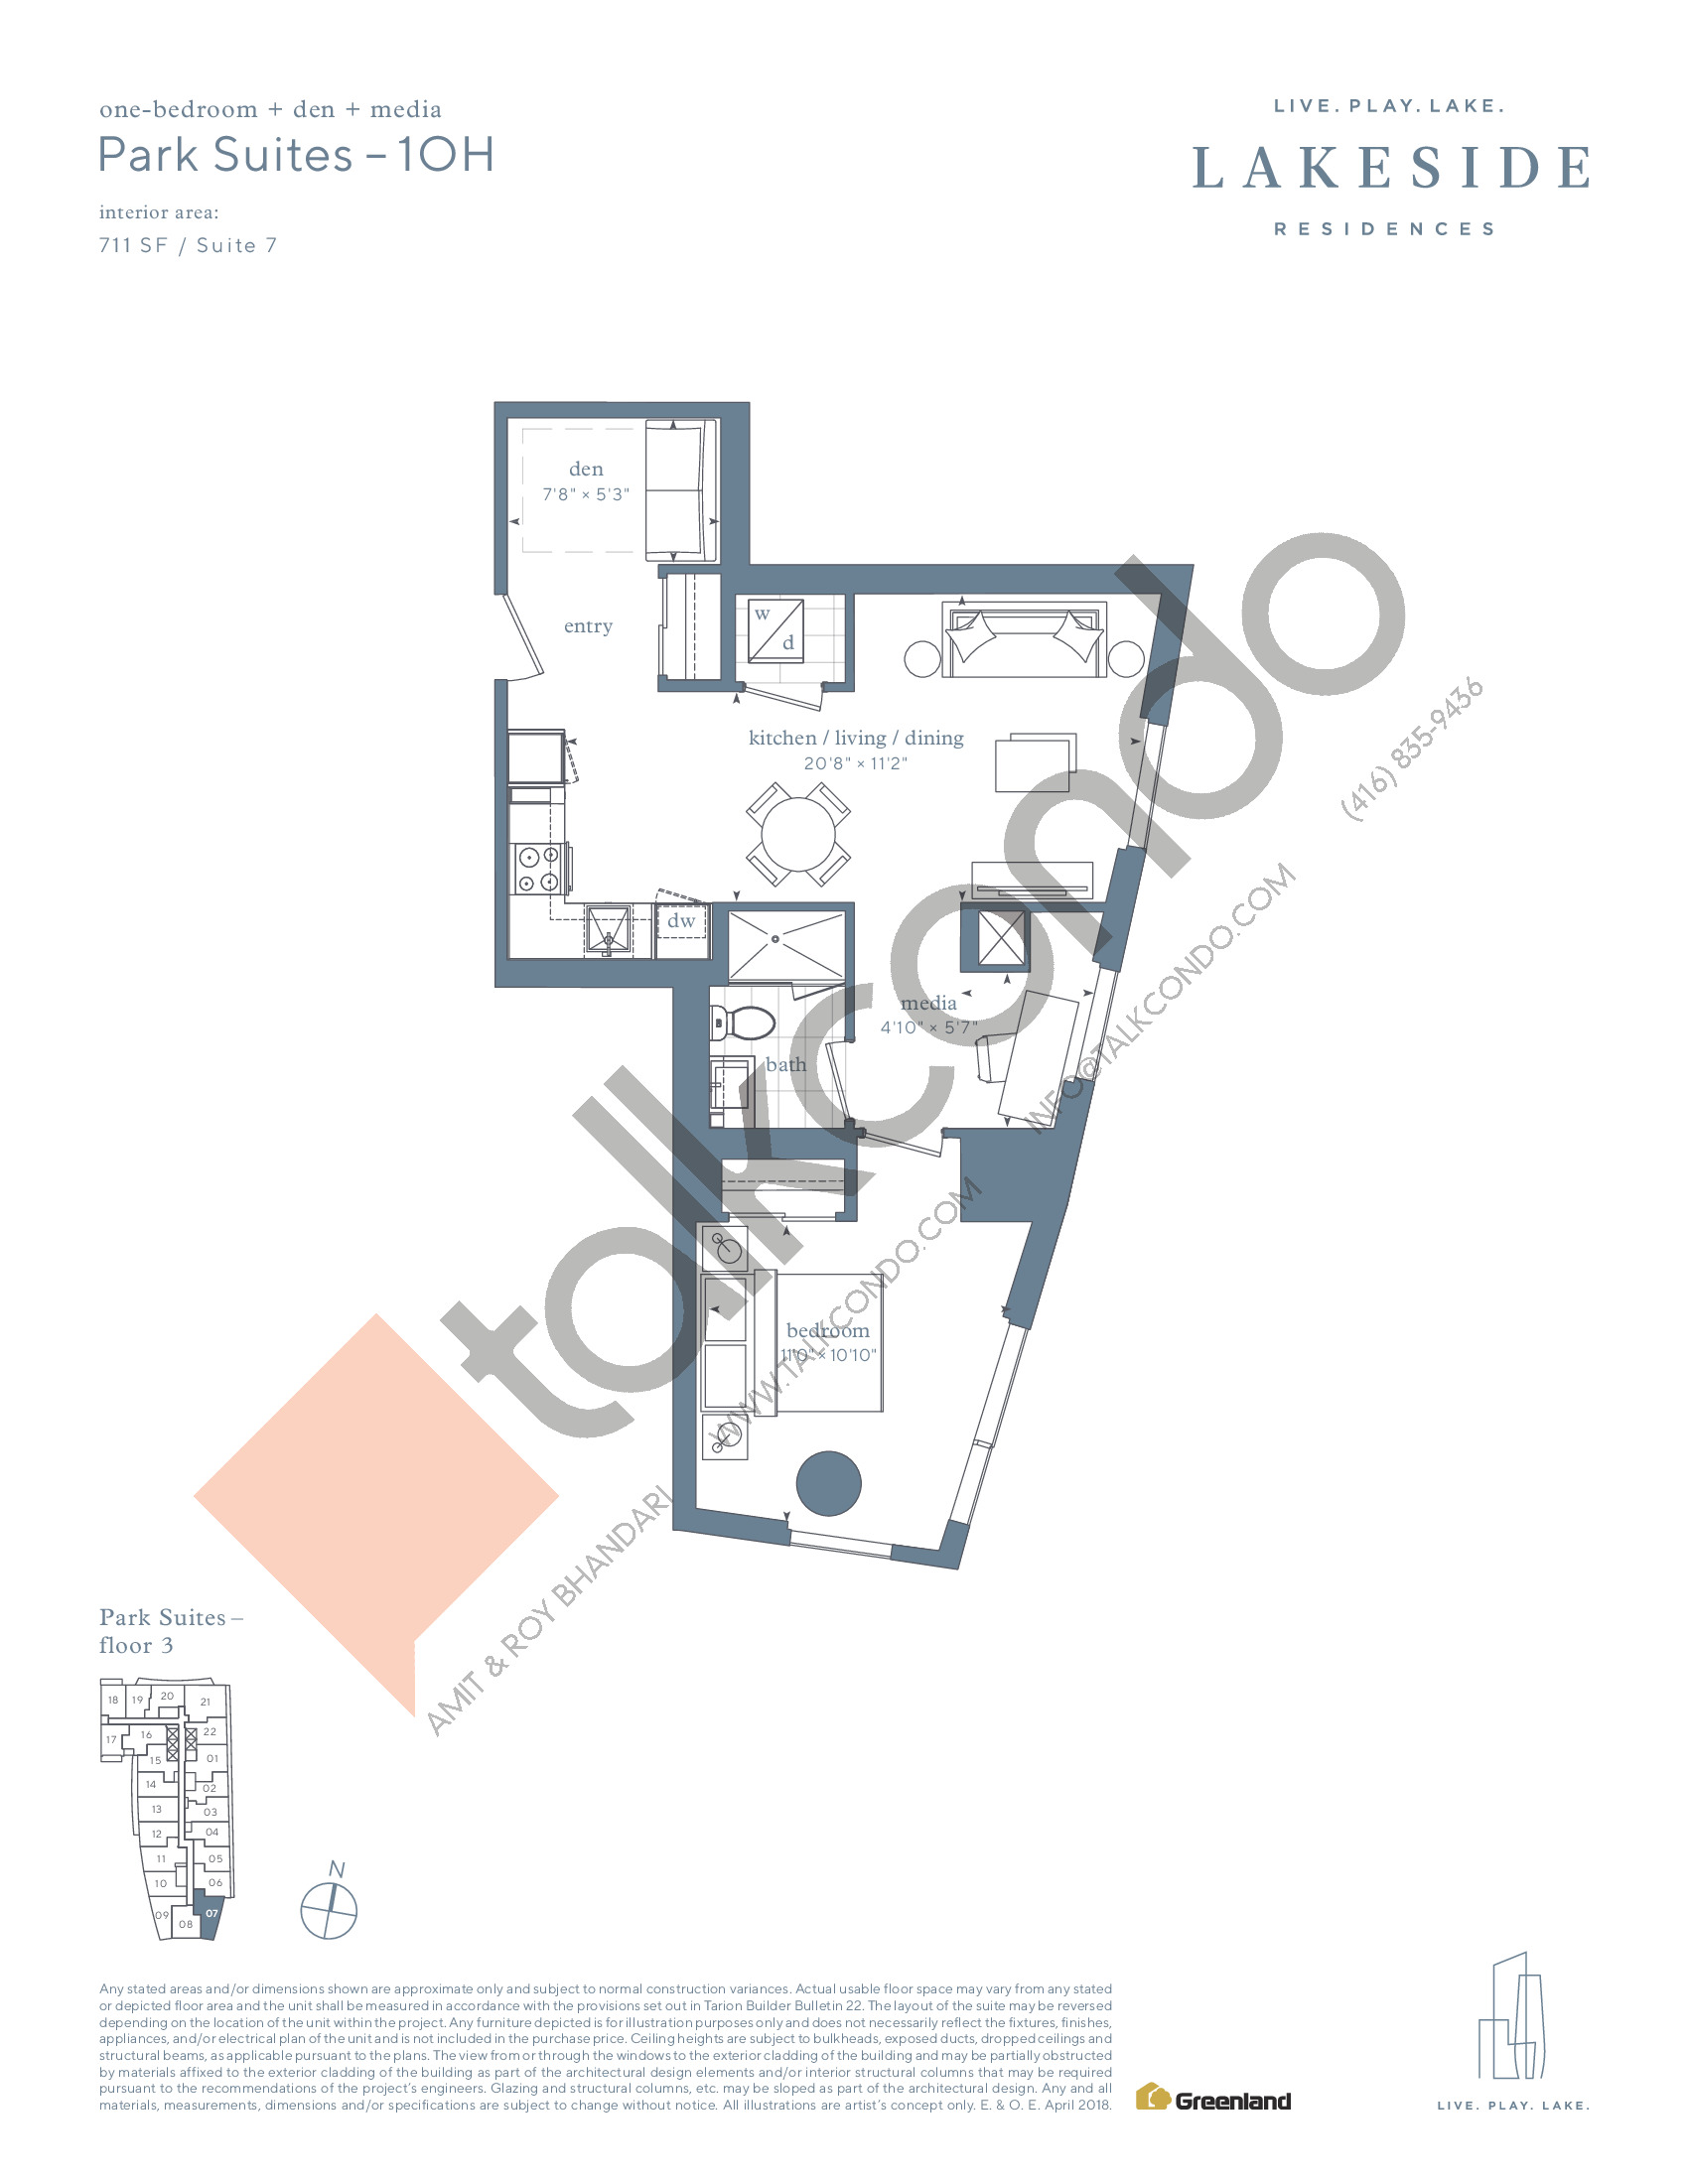 Park Suites - 1OH Floor Plan at Lakeside Residences - 711 sq.ft